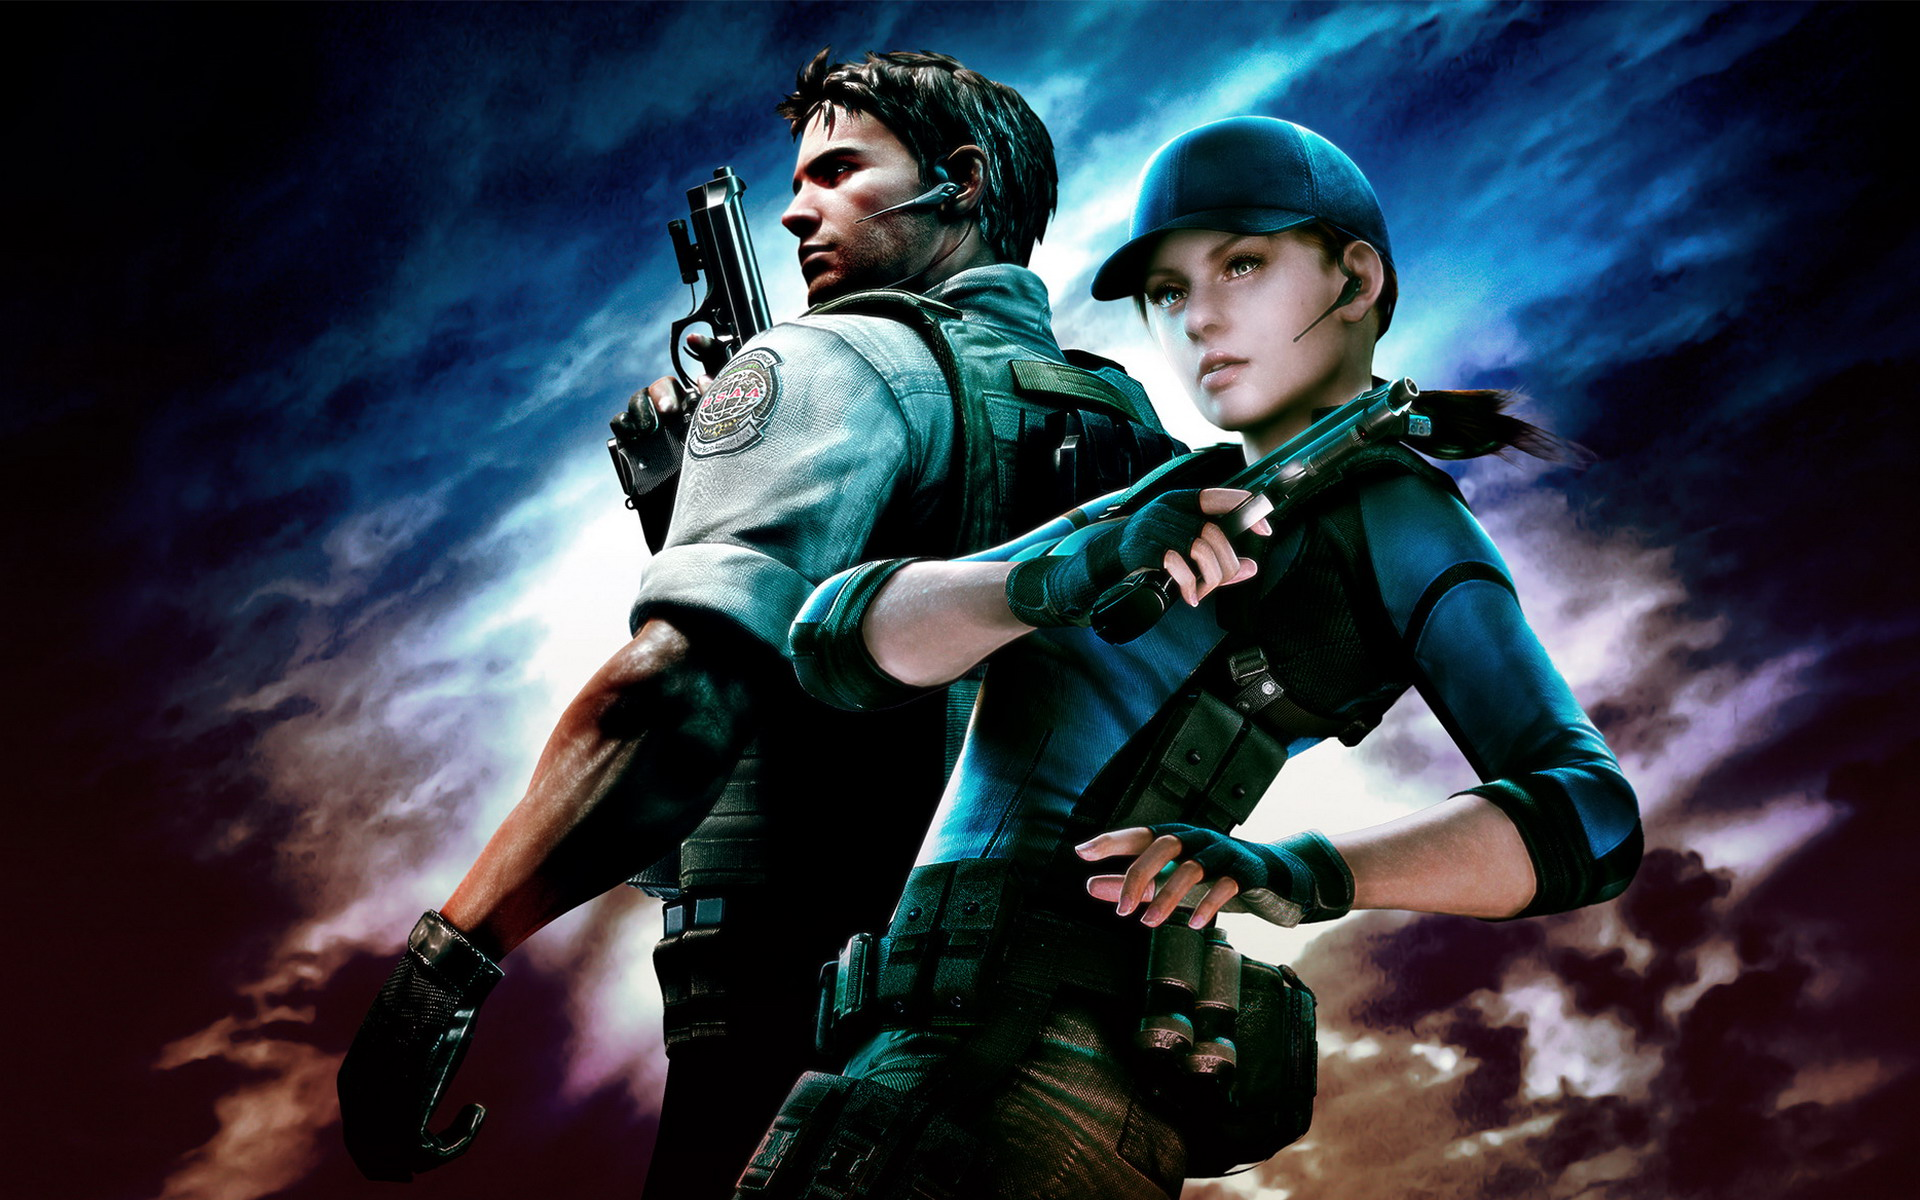 Free Download Resident Evil 5 Game Wallpapers Hd Wallpapers